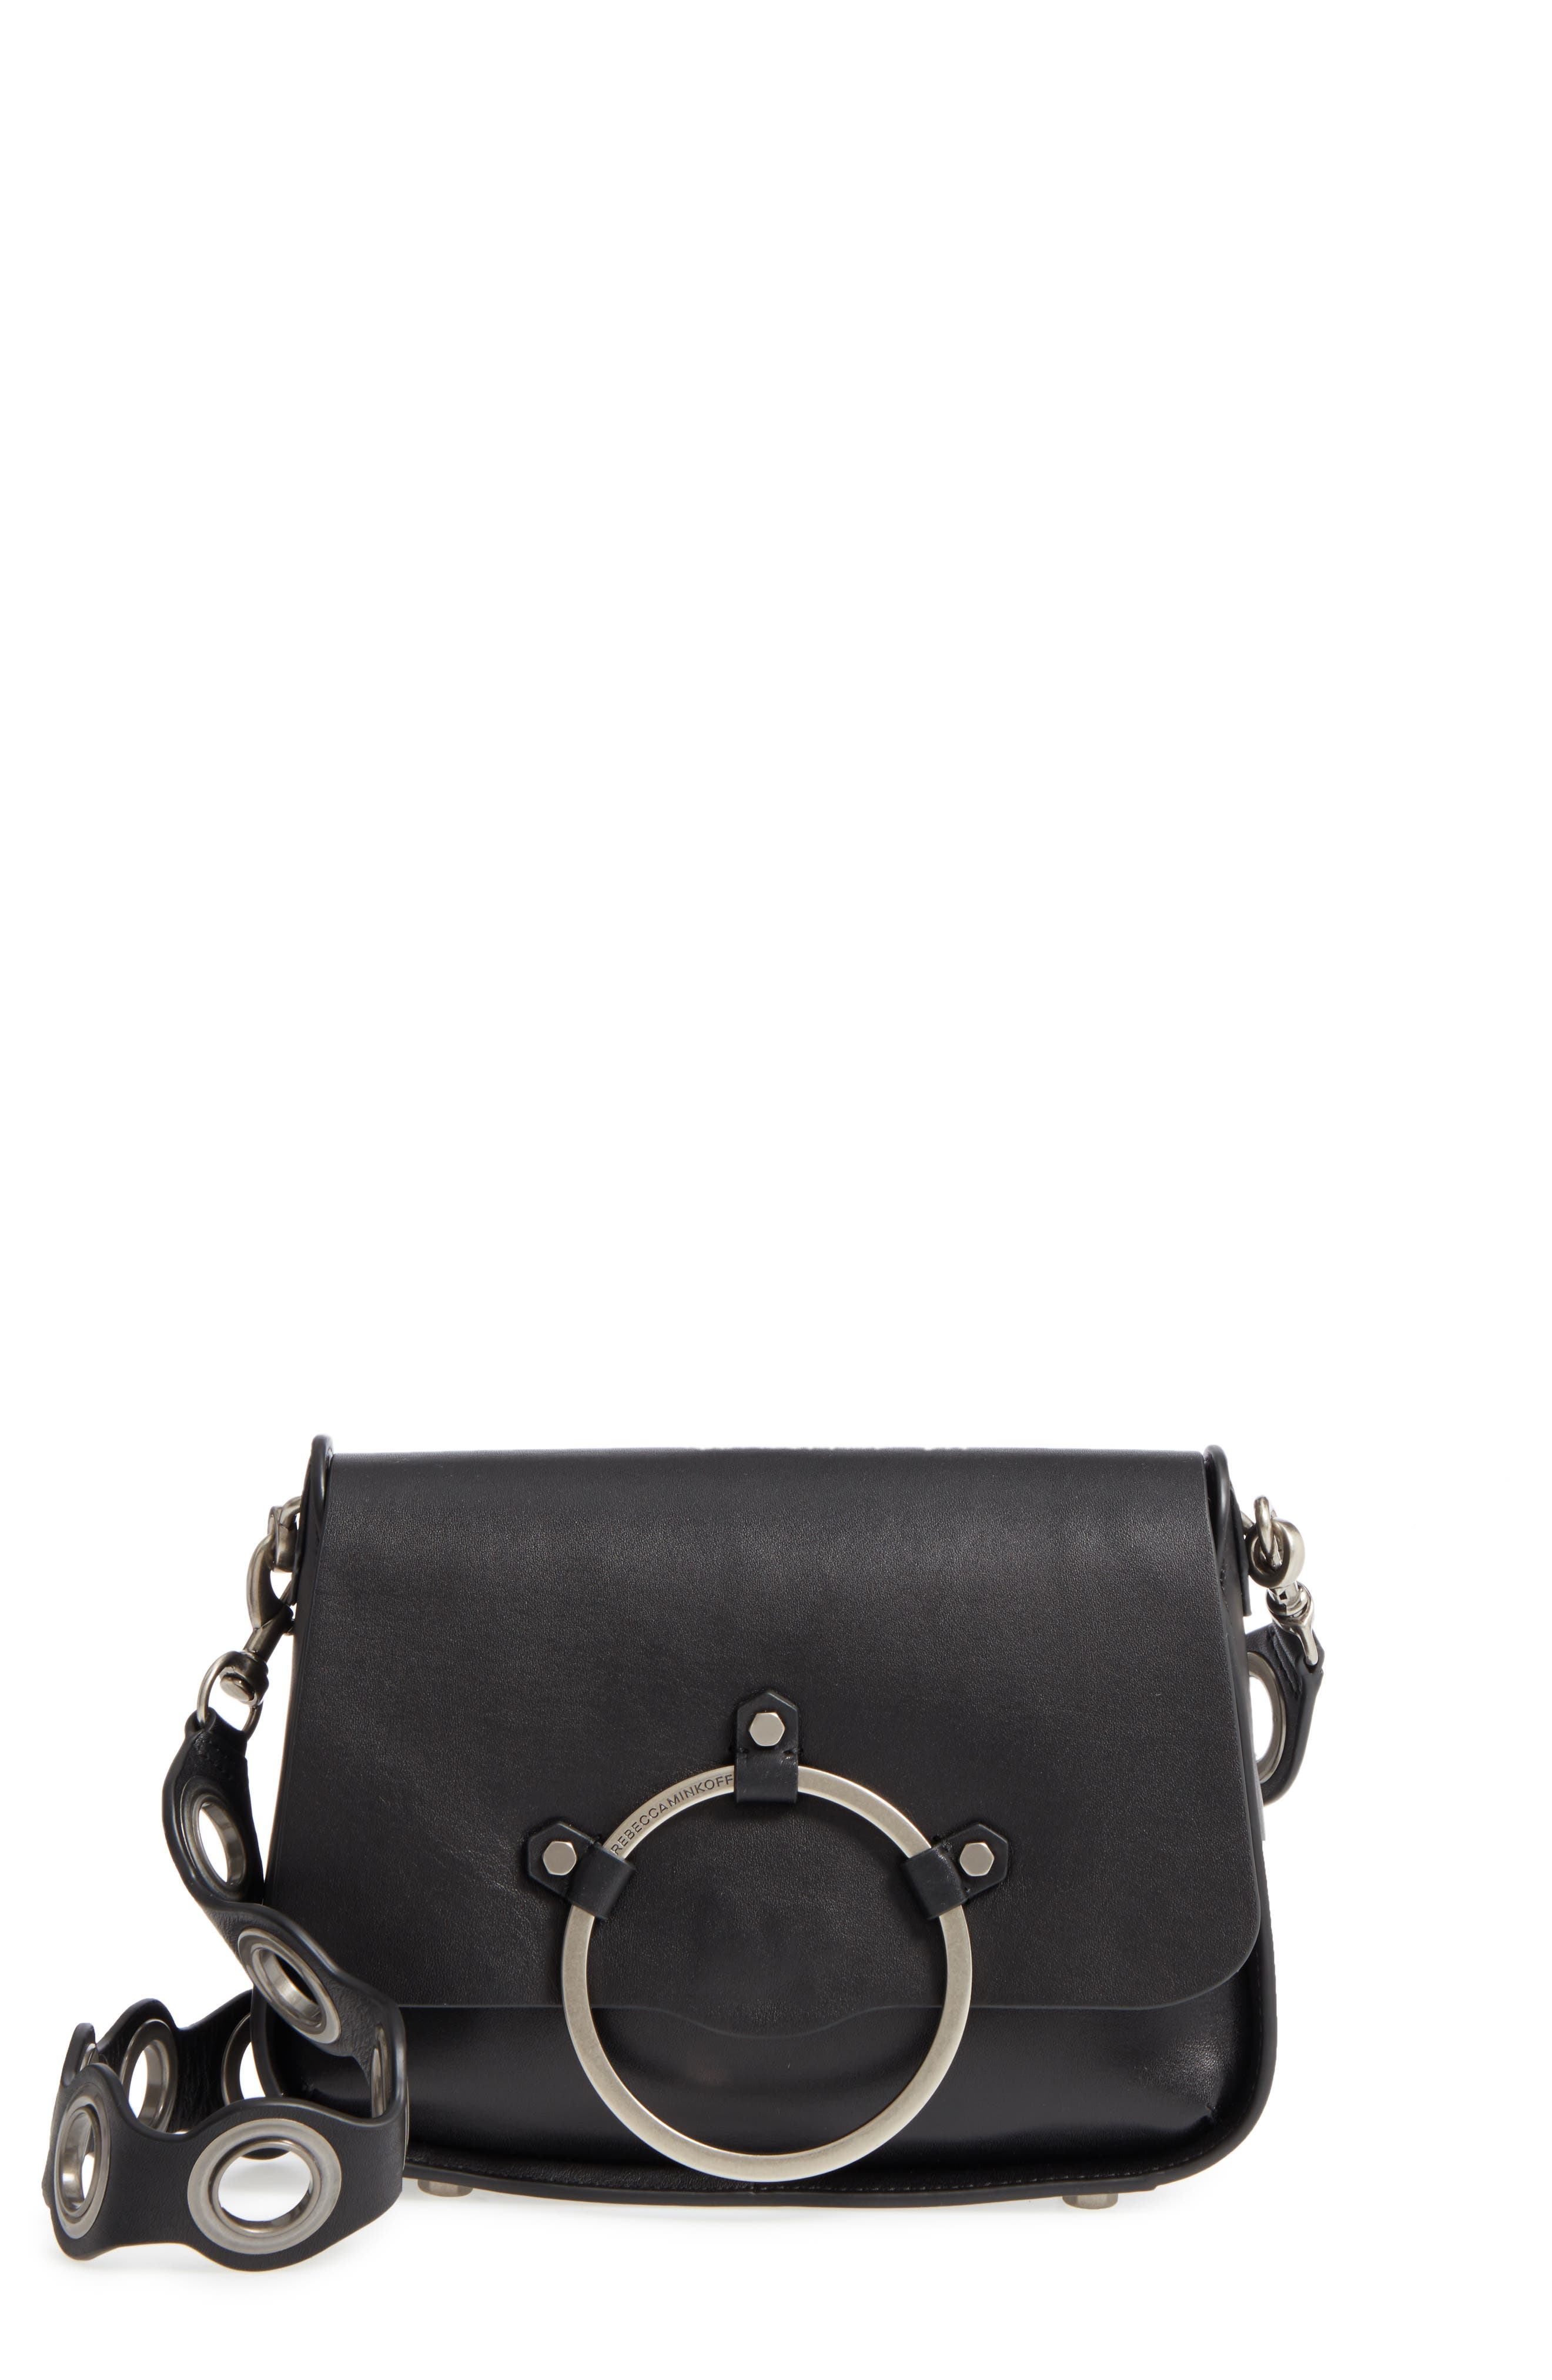 Rebecca Minkoff Ring Leather Shoulder Bag